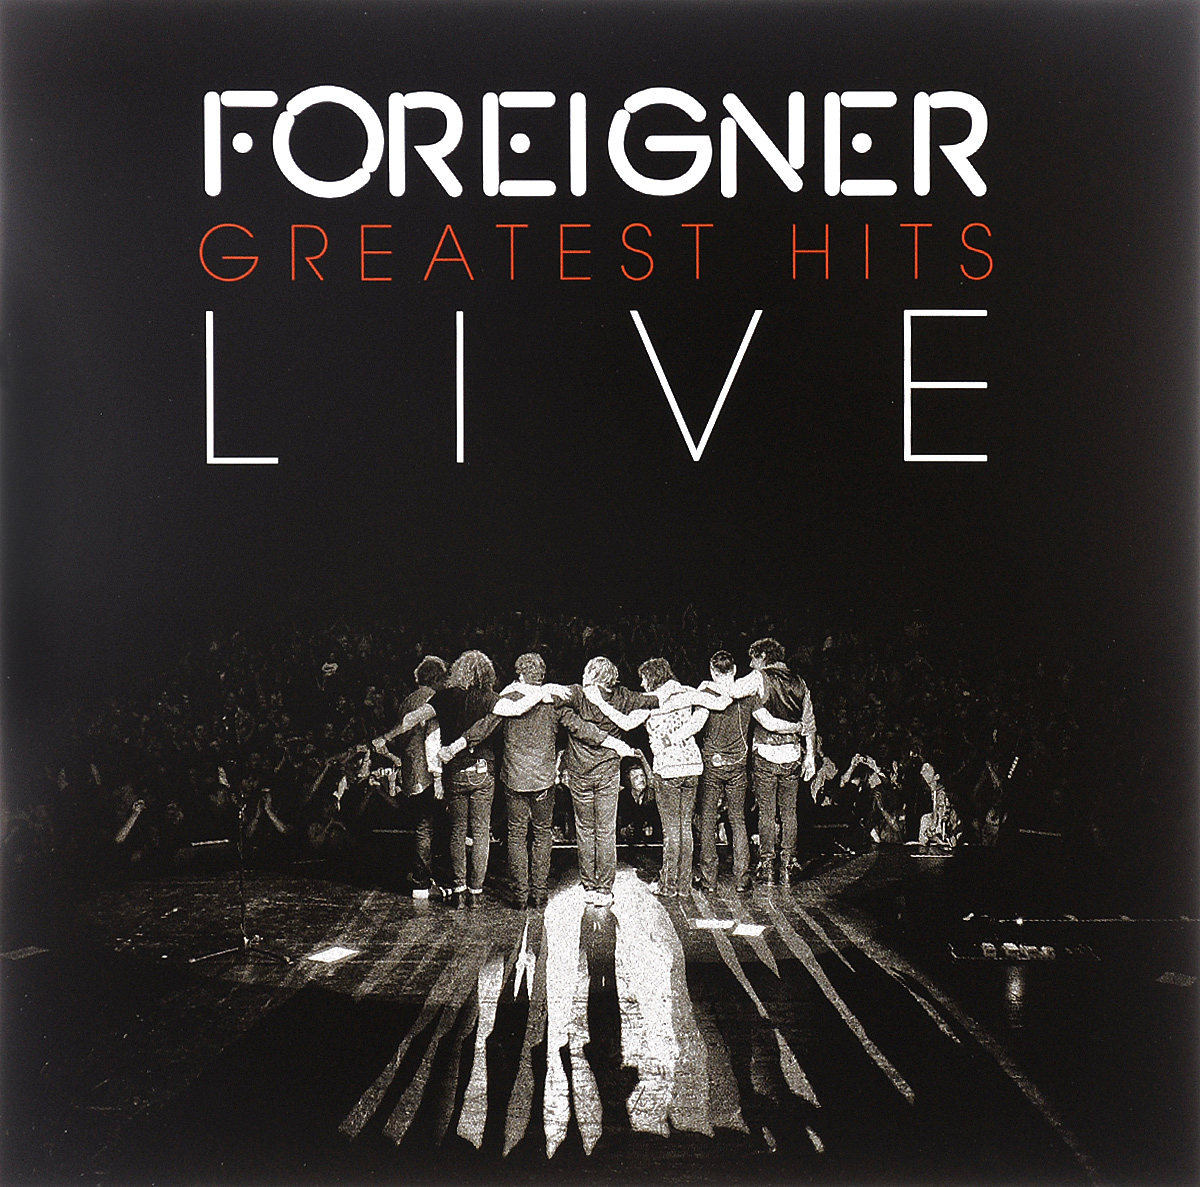 Foreigner Foreigner. Greatest Hits. Live